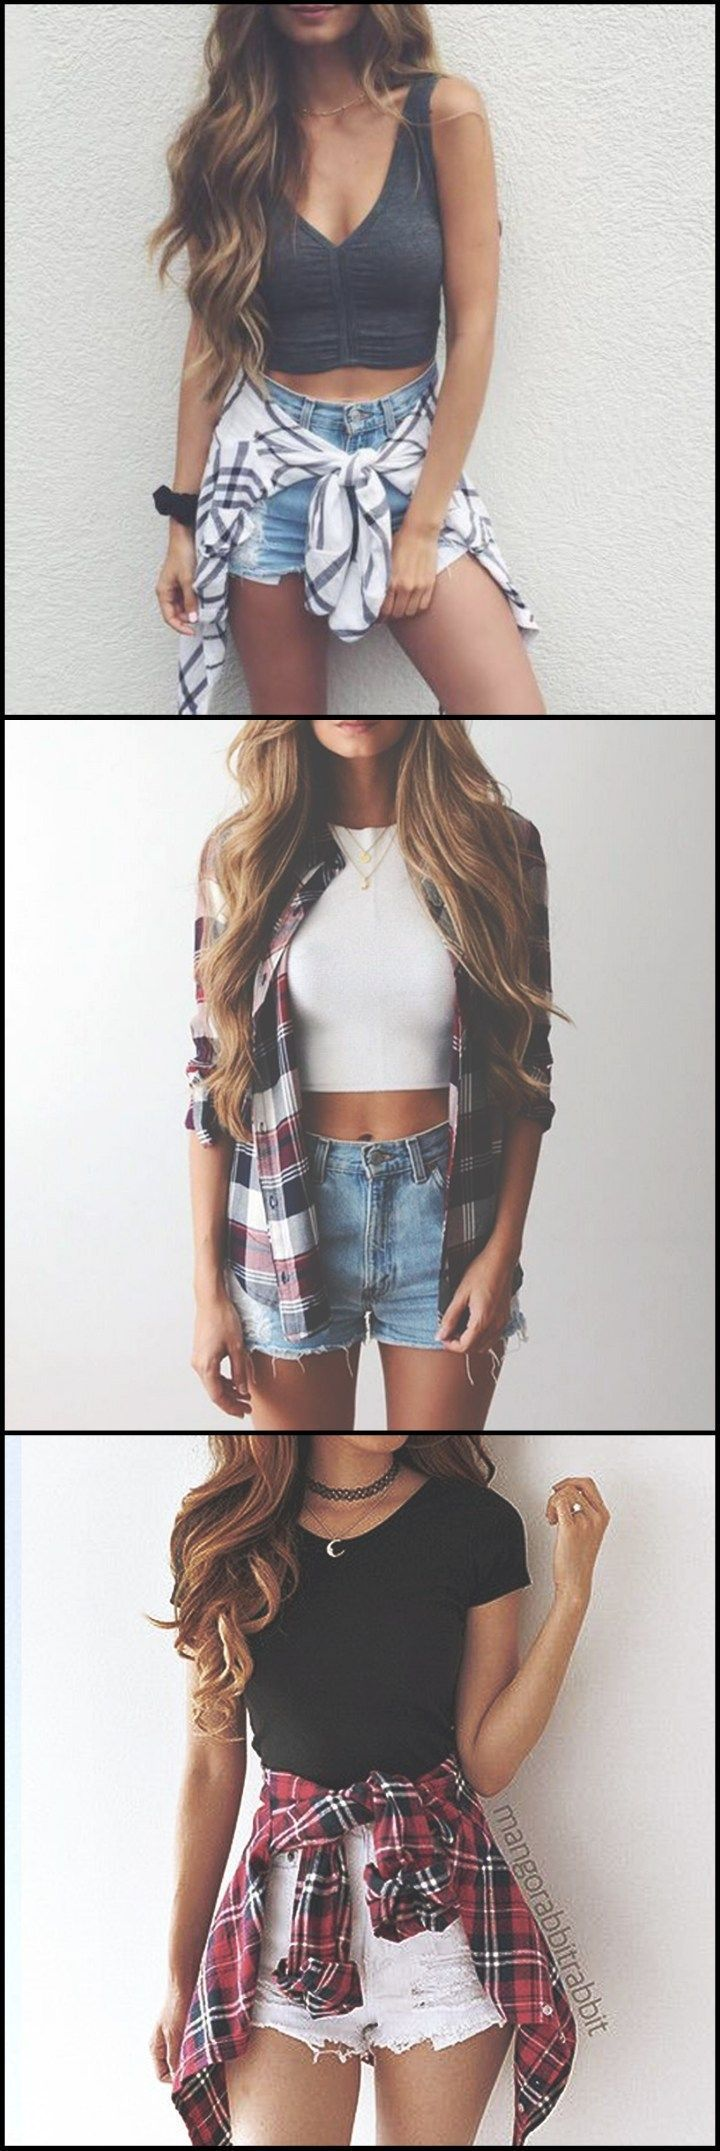 Nette Outfits Nette Beiläufige Sommer Outfit Ideen für Teens 2017 Flanell Plaid Hohe